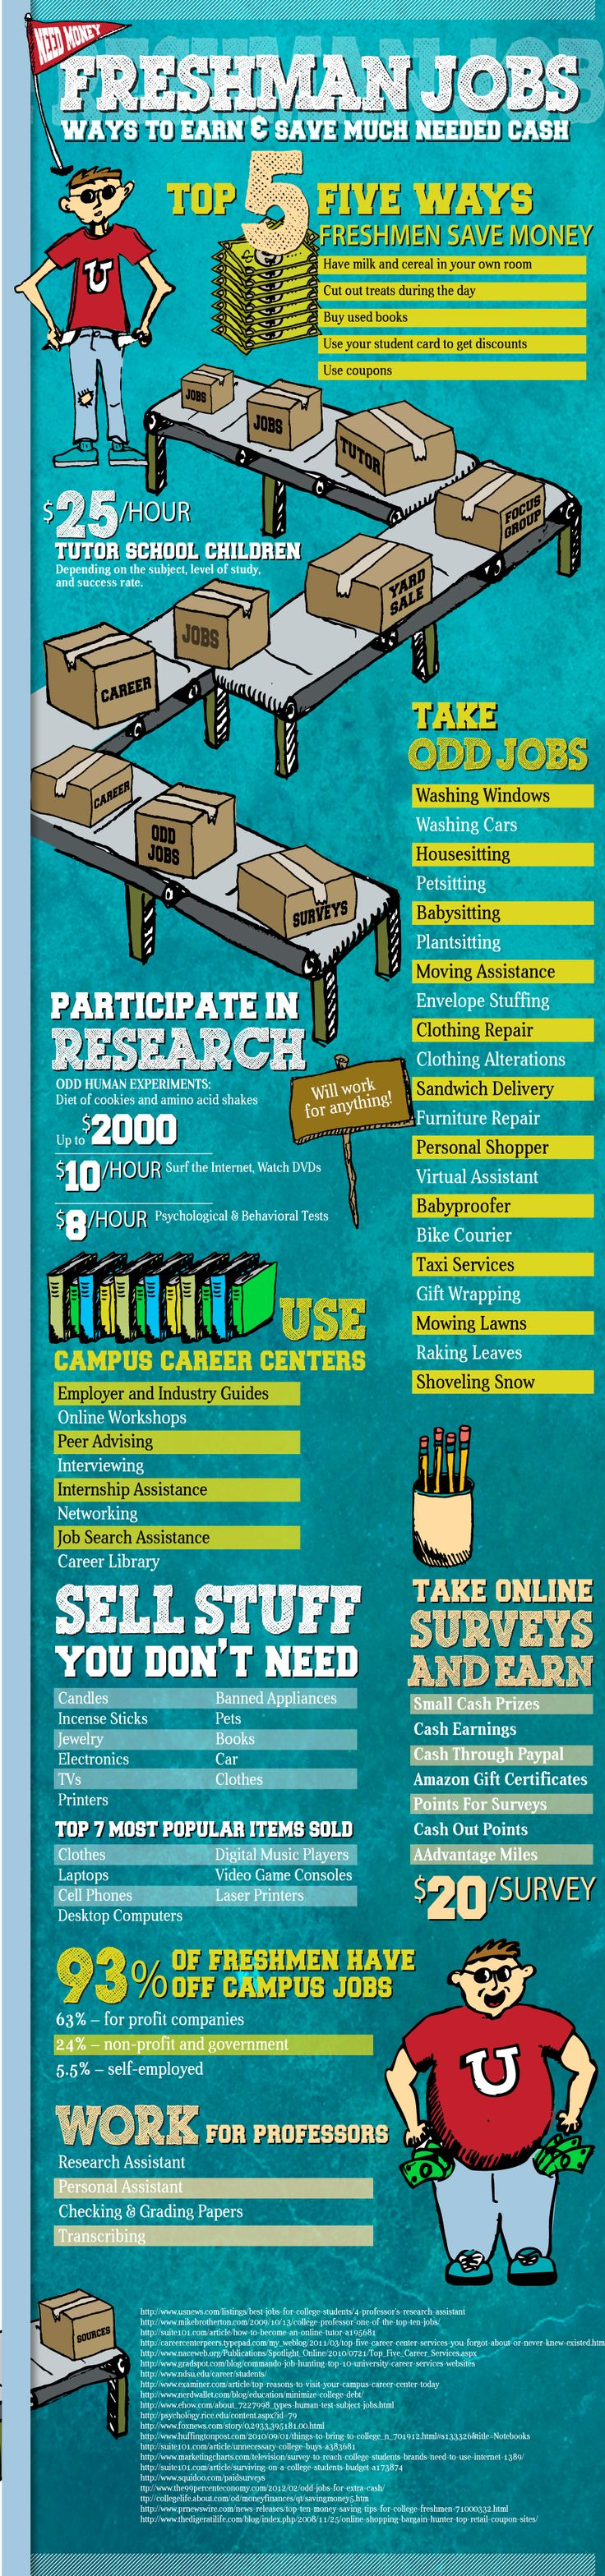 Need money - Freshman Jobs: Tips to #Earn and Save Much #Cash #infographic